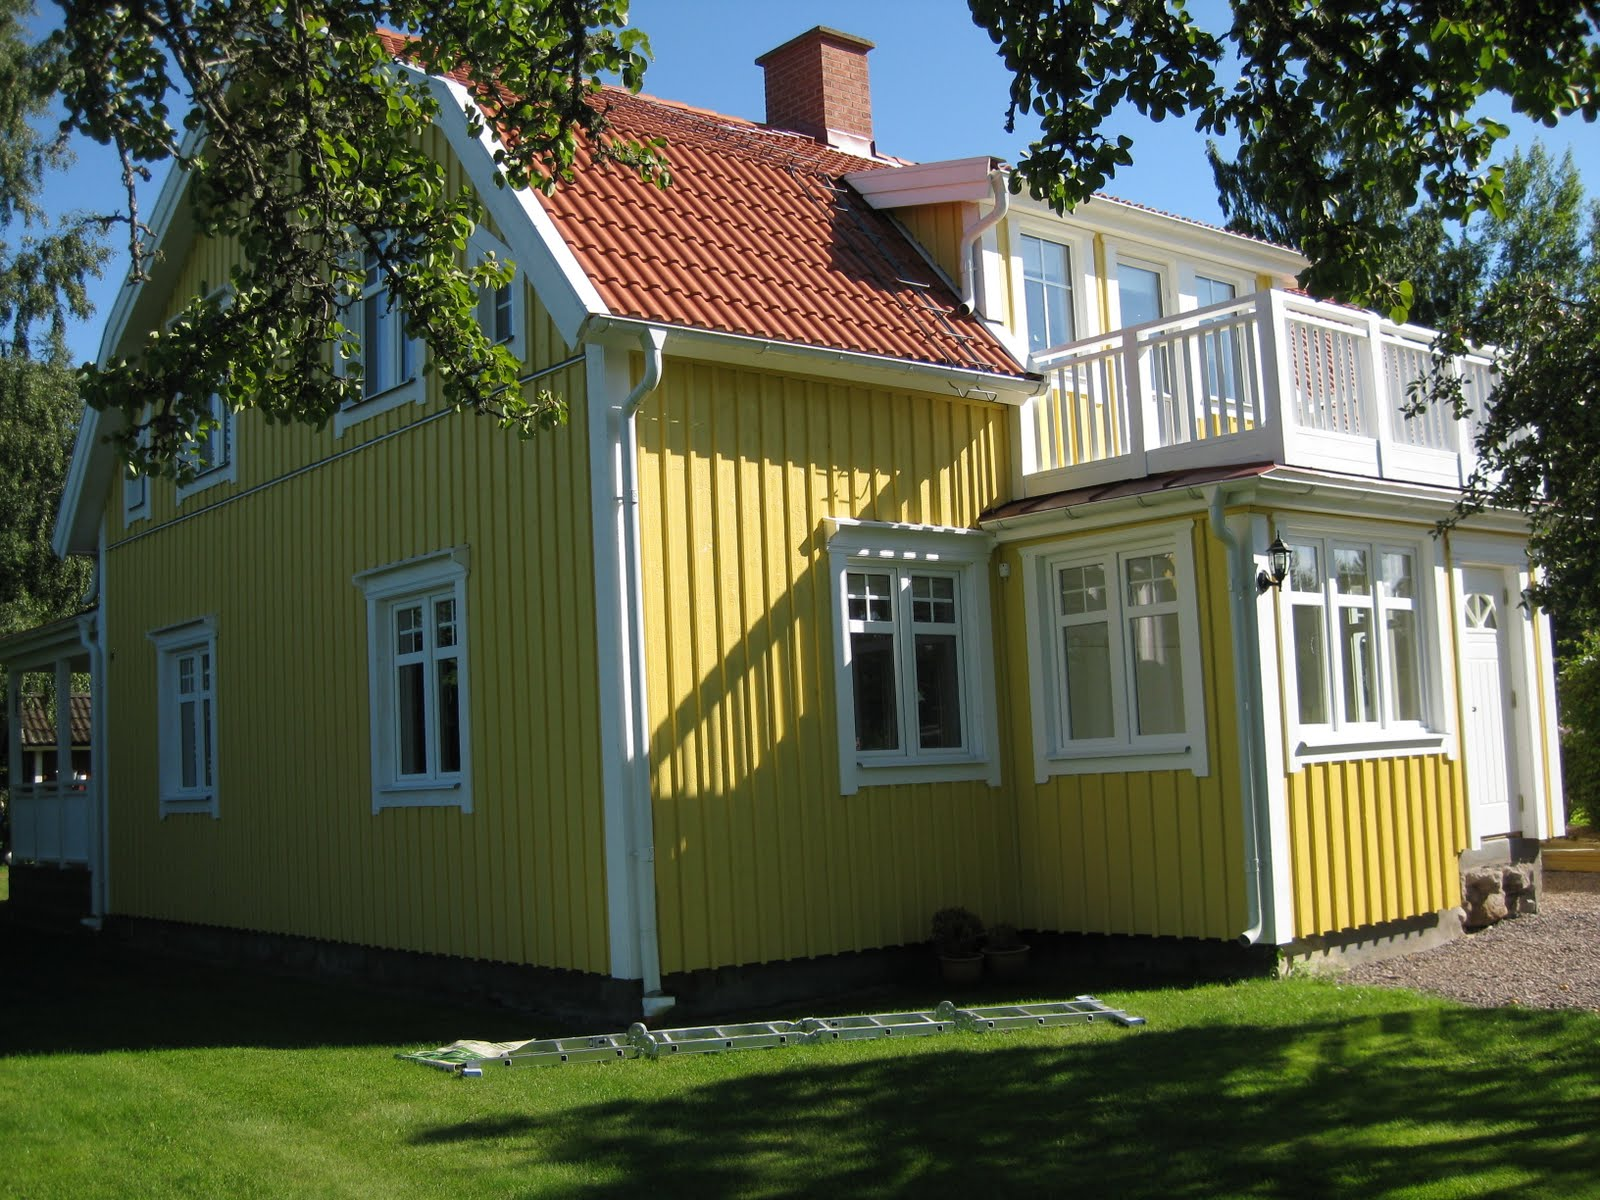 Trapp Till Veranda: Images about swedish veranda on. Family ...